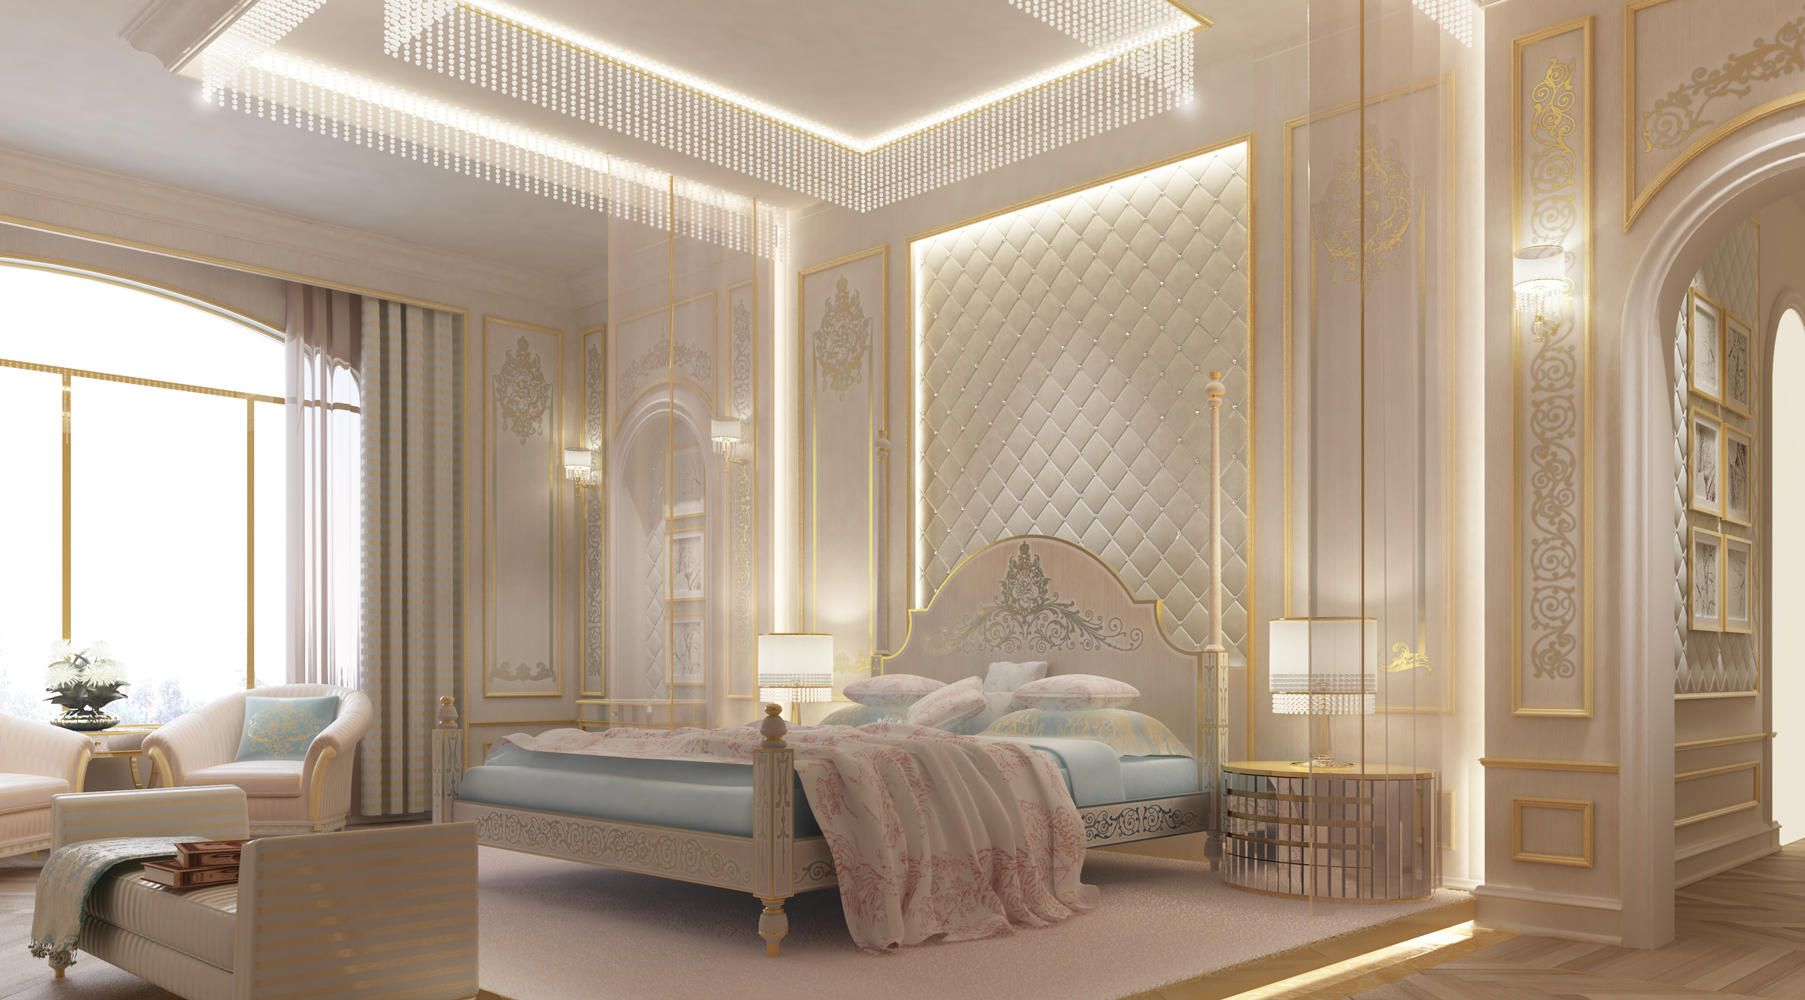 Dubai bedroom bedroom design abu dhabi d for Interior decoration company